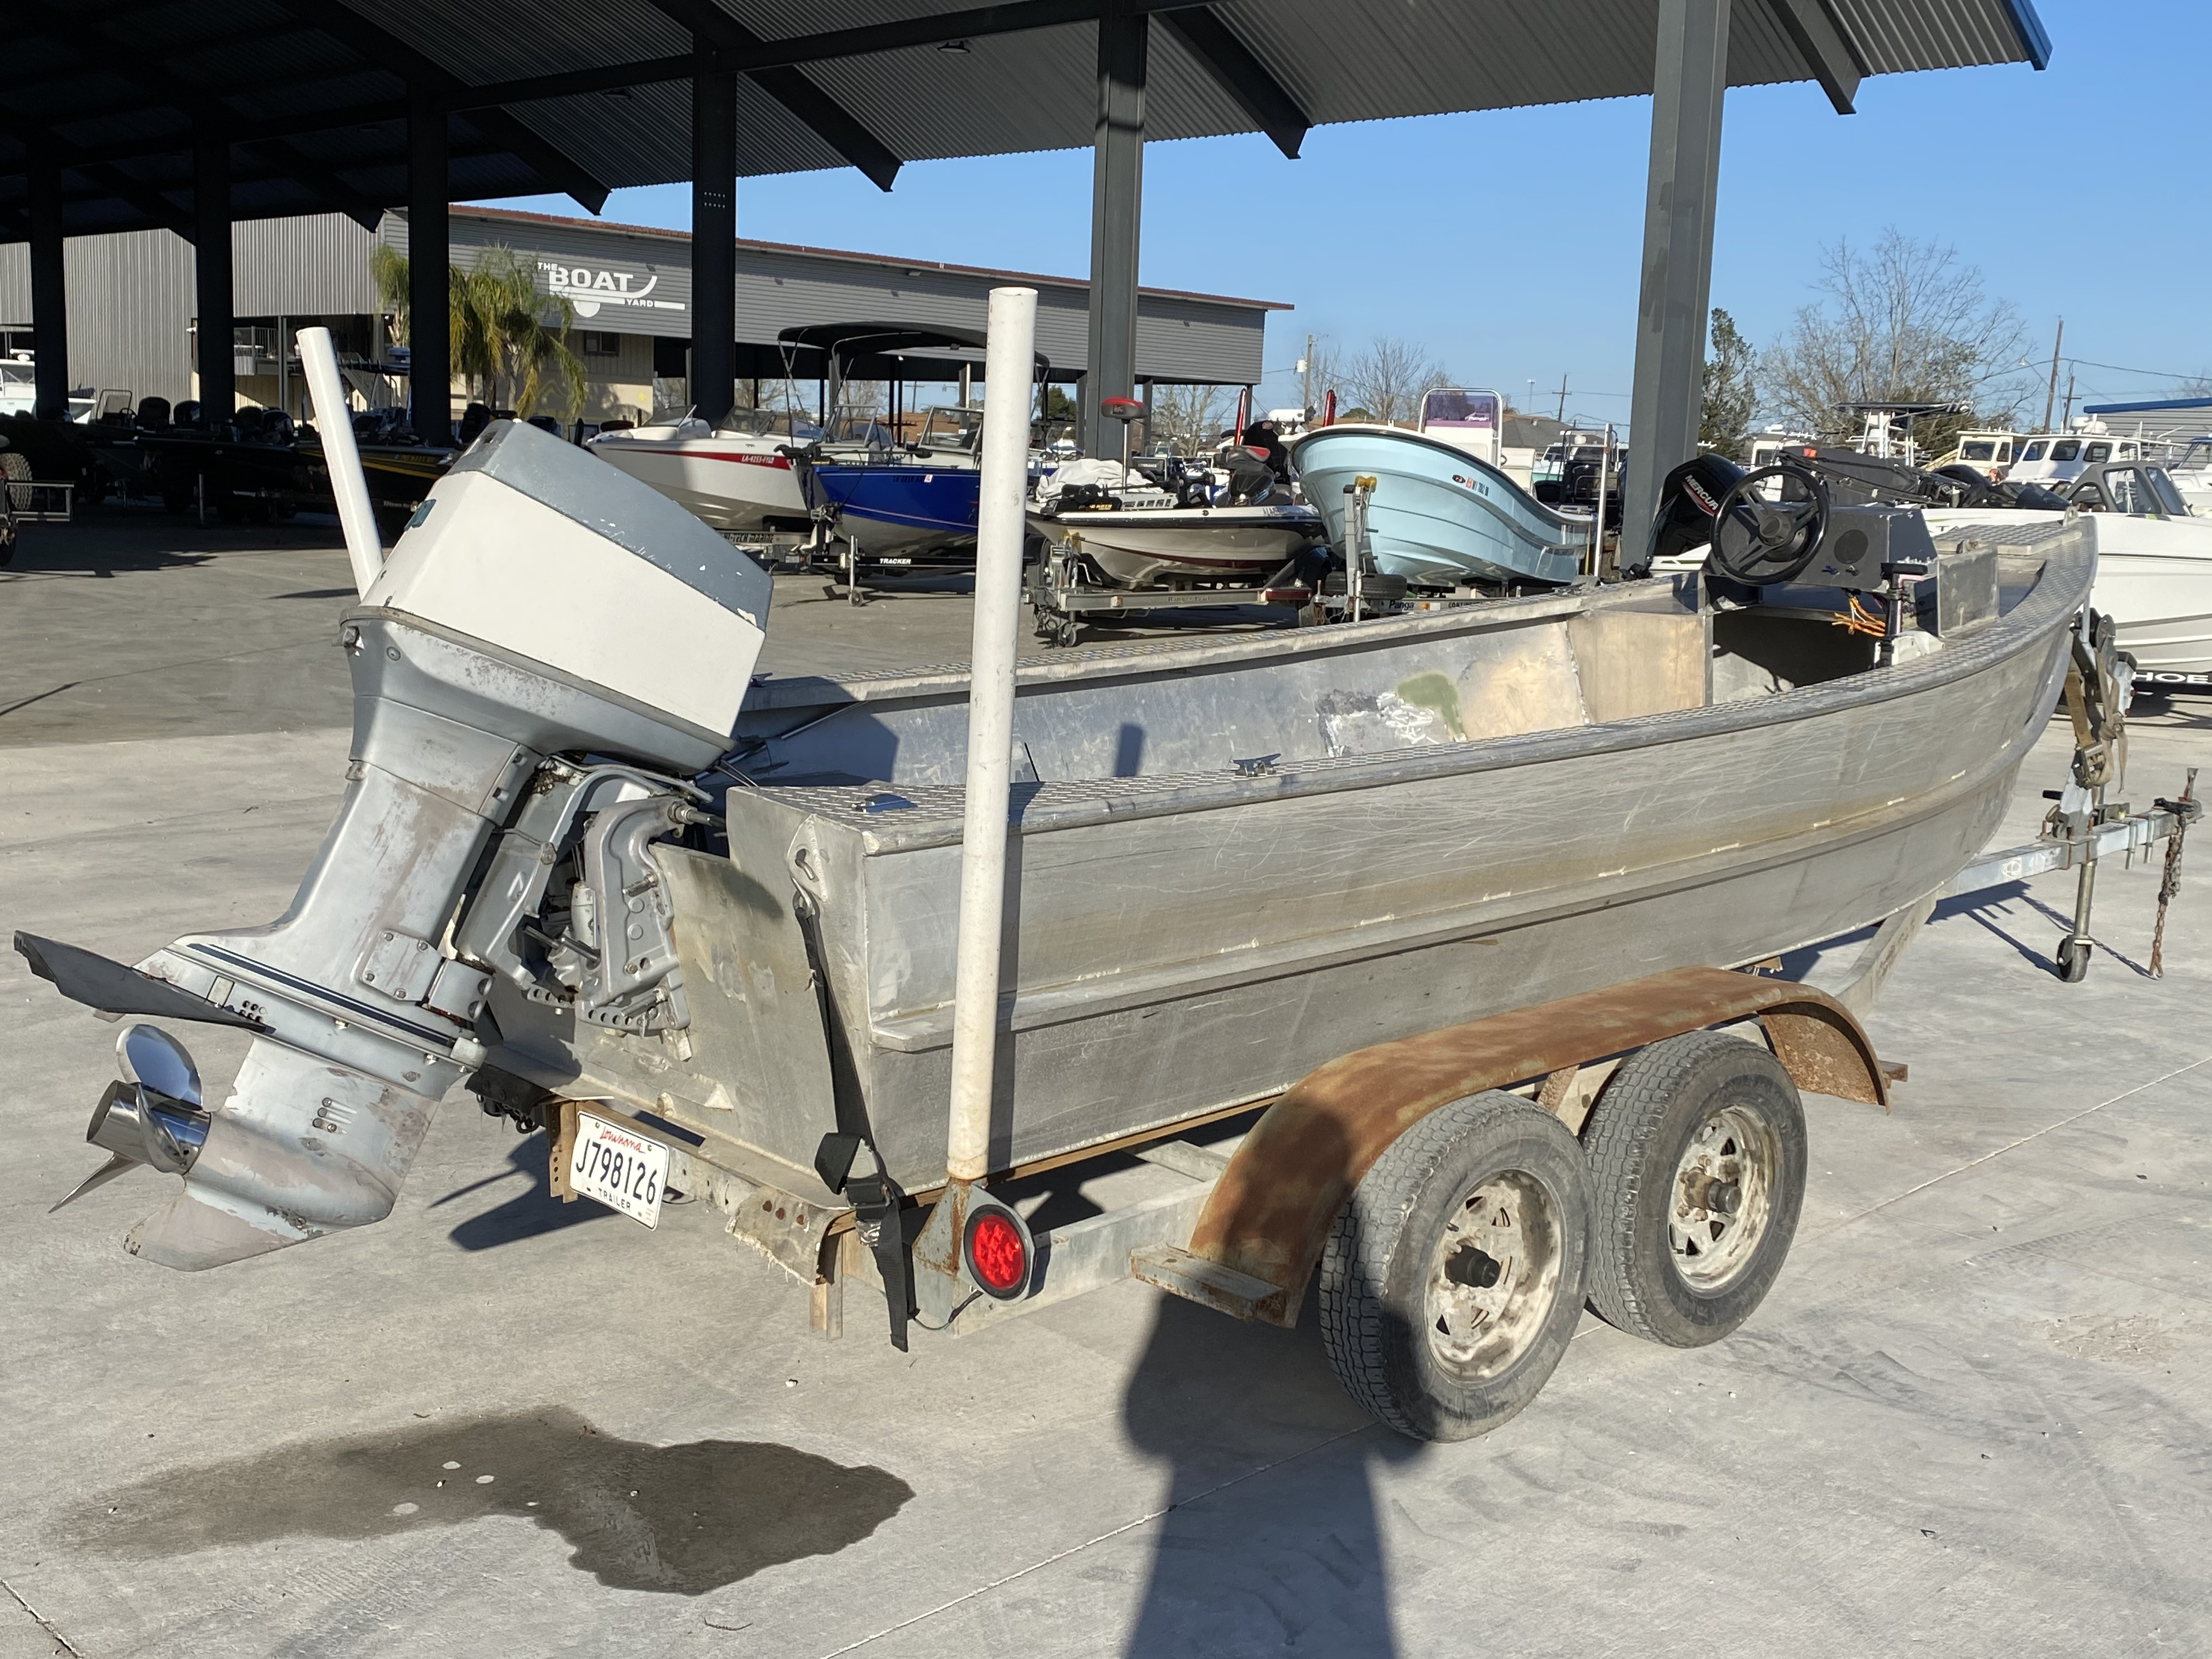 1993 Gravois boat for sale, model of the boat is 17 Skiff & Image # 5 of 8